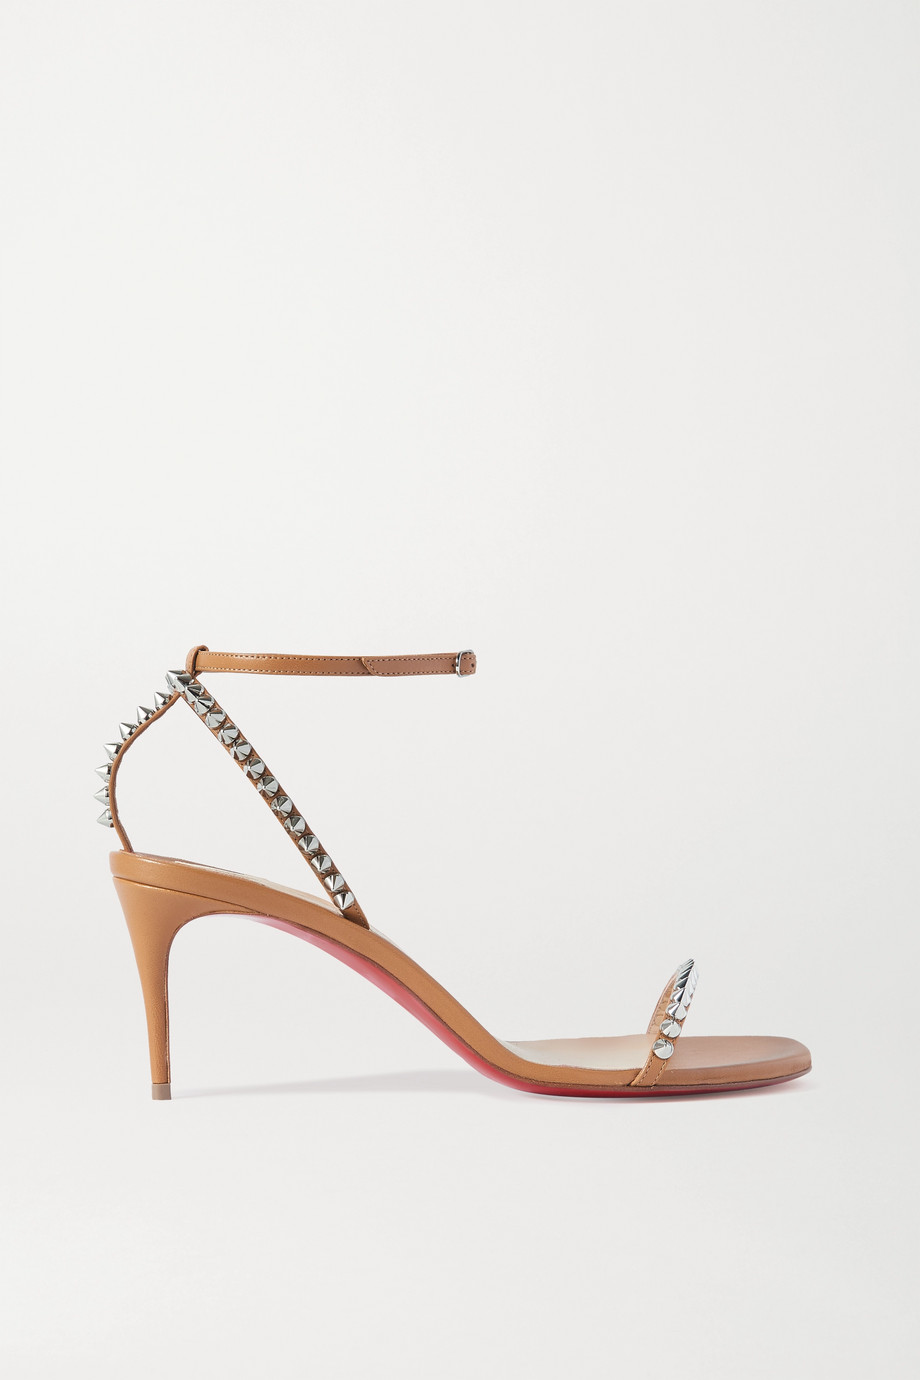 Christian Louboutin So Me 70 studded leather sandals